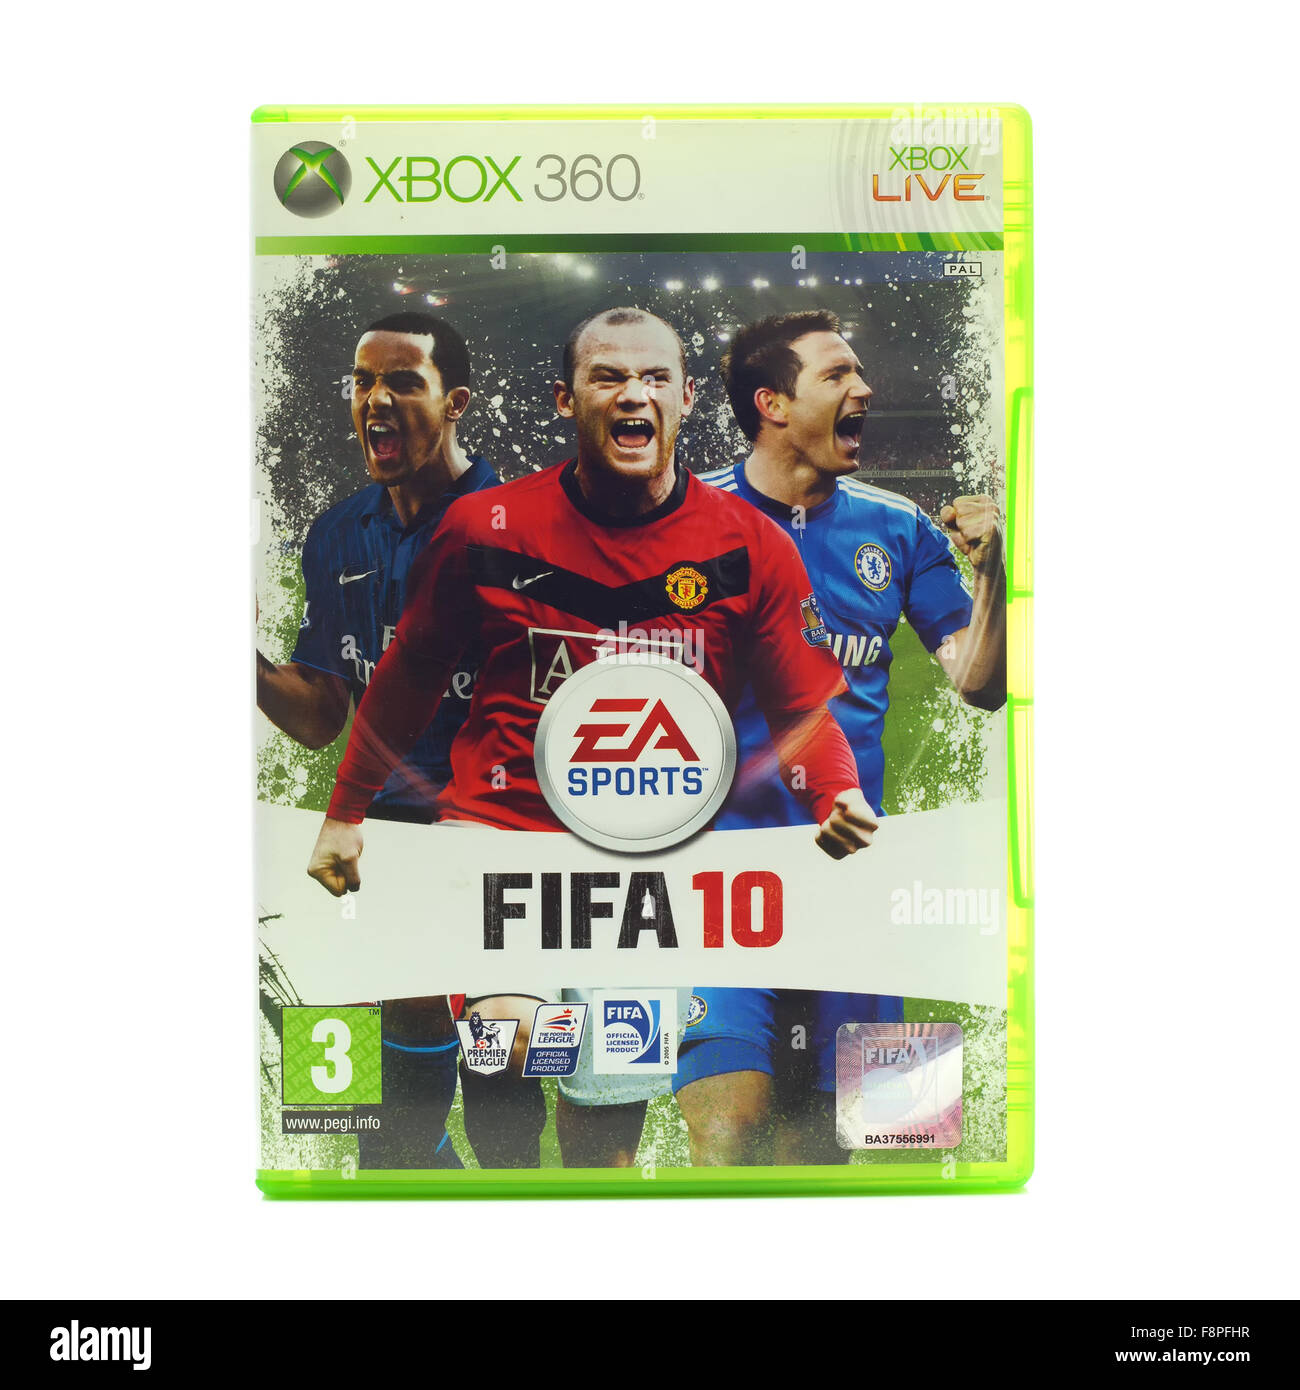 FIFA 2010 by EA Sports for the XBox console on a White Background - Stock Image